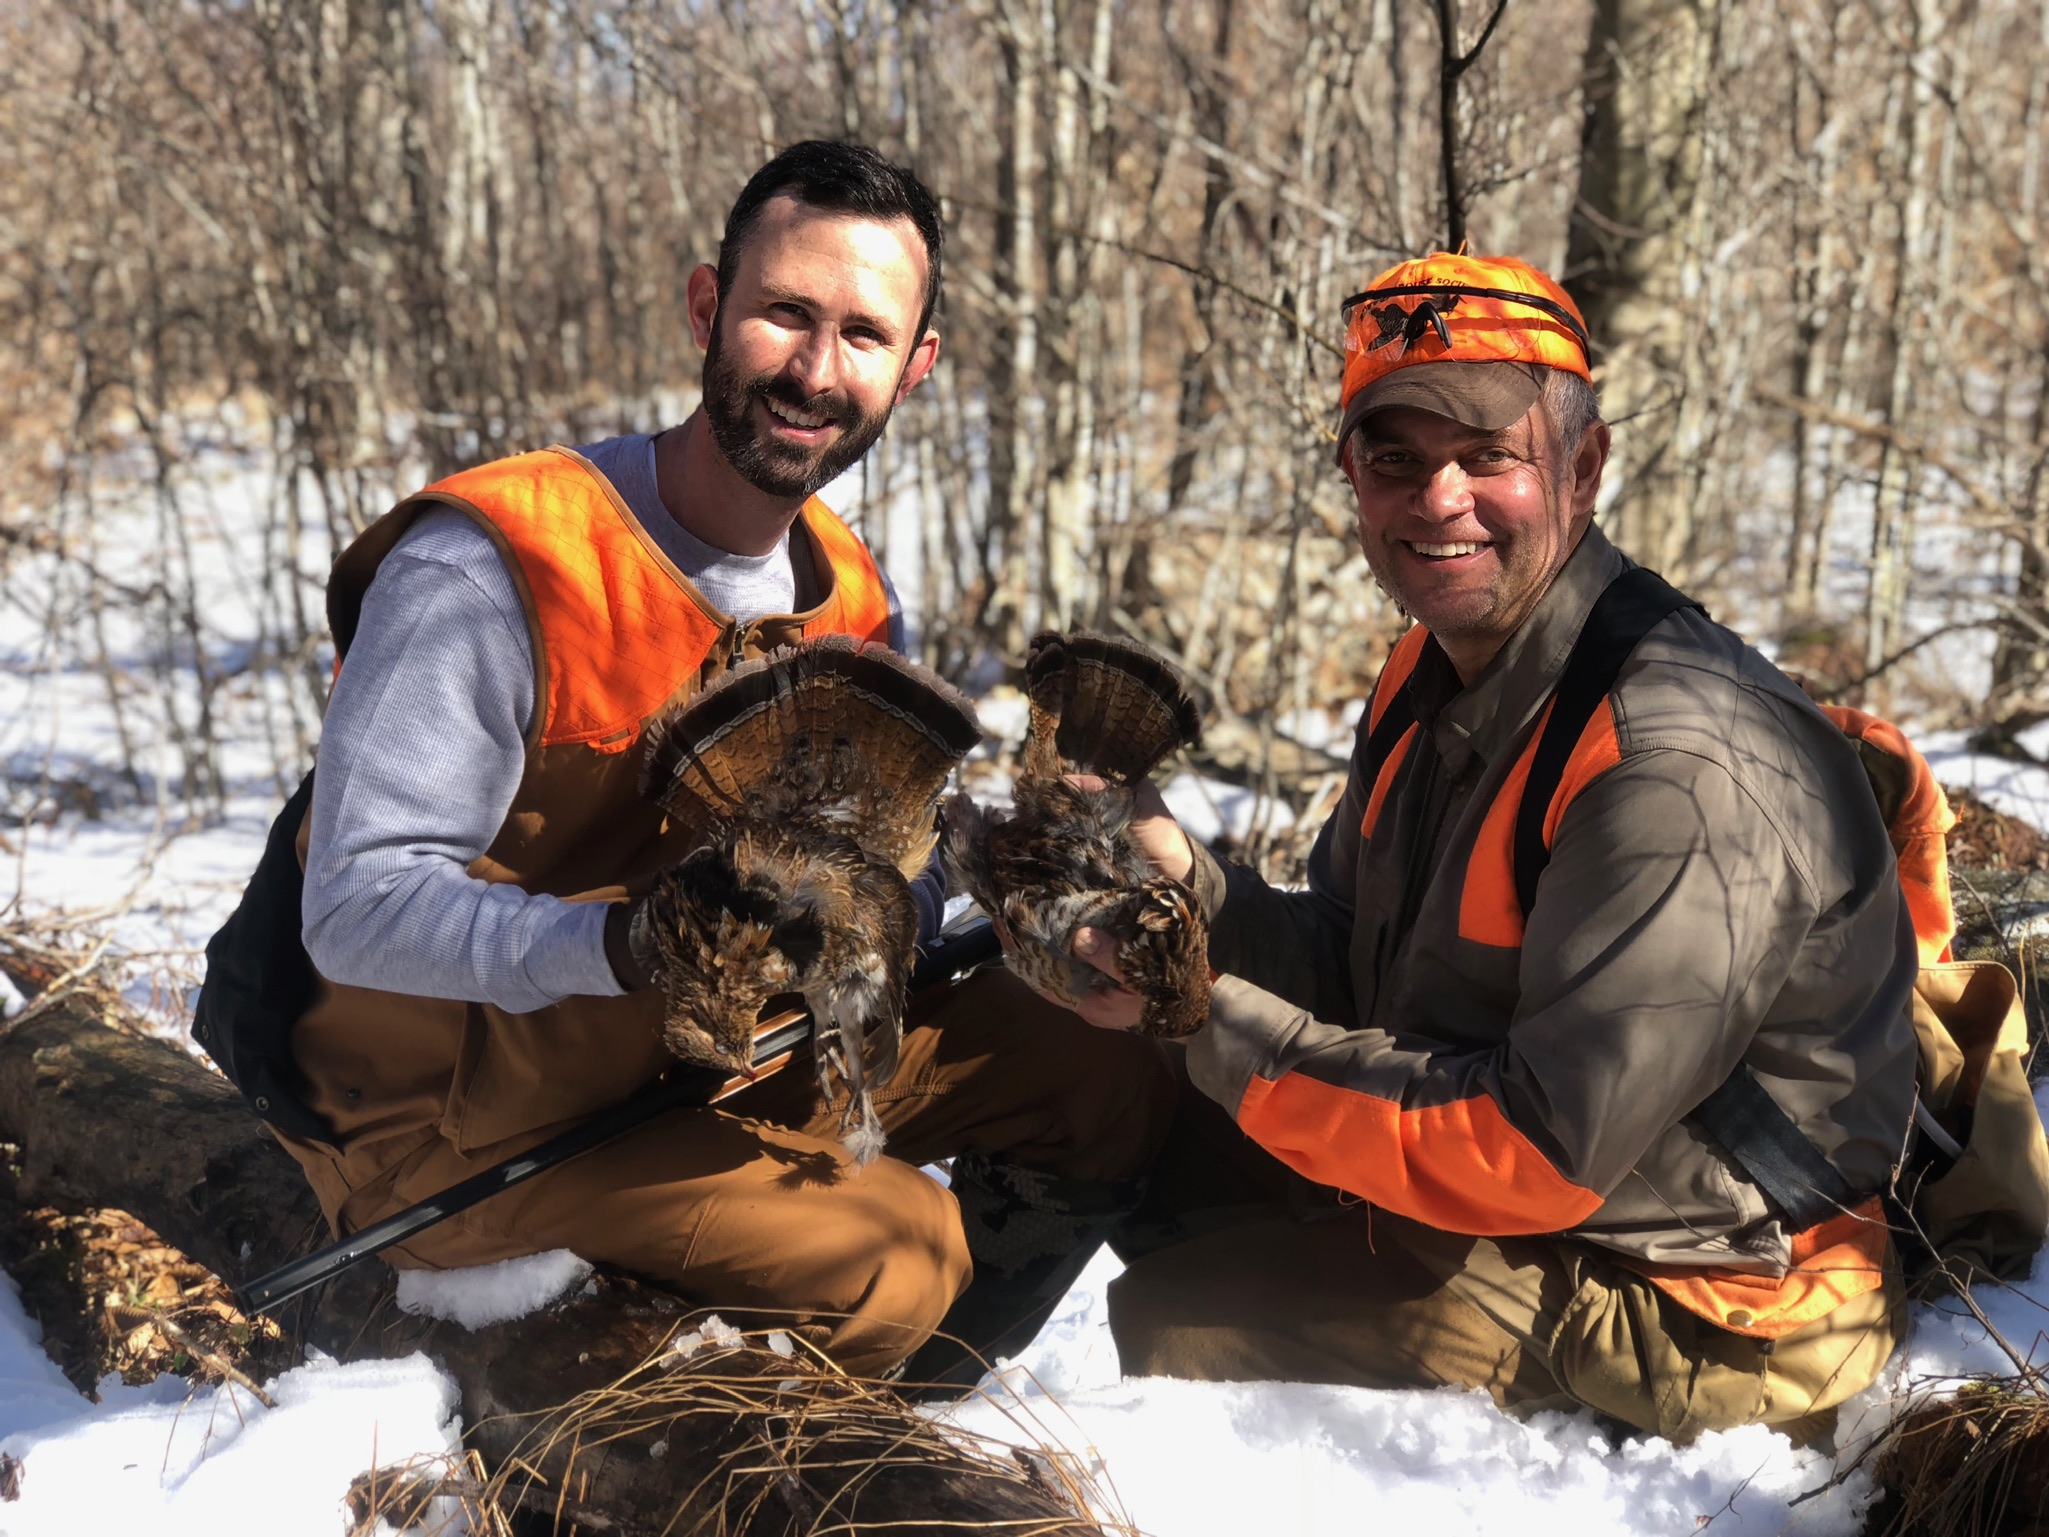 Justin and Chip with grouse harvest (photo credit: Cort Grubb)